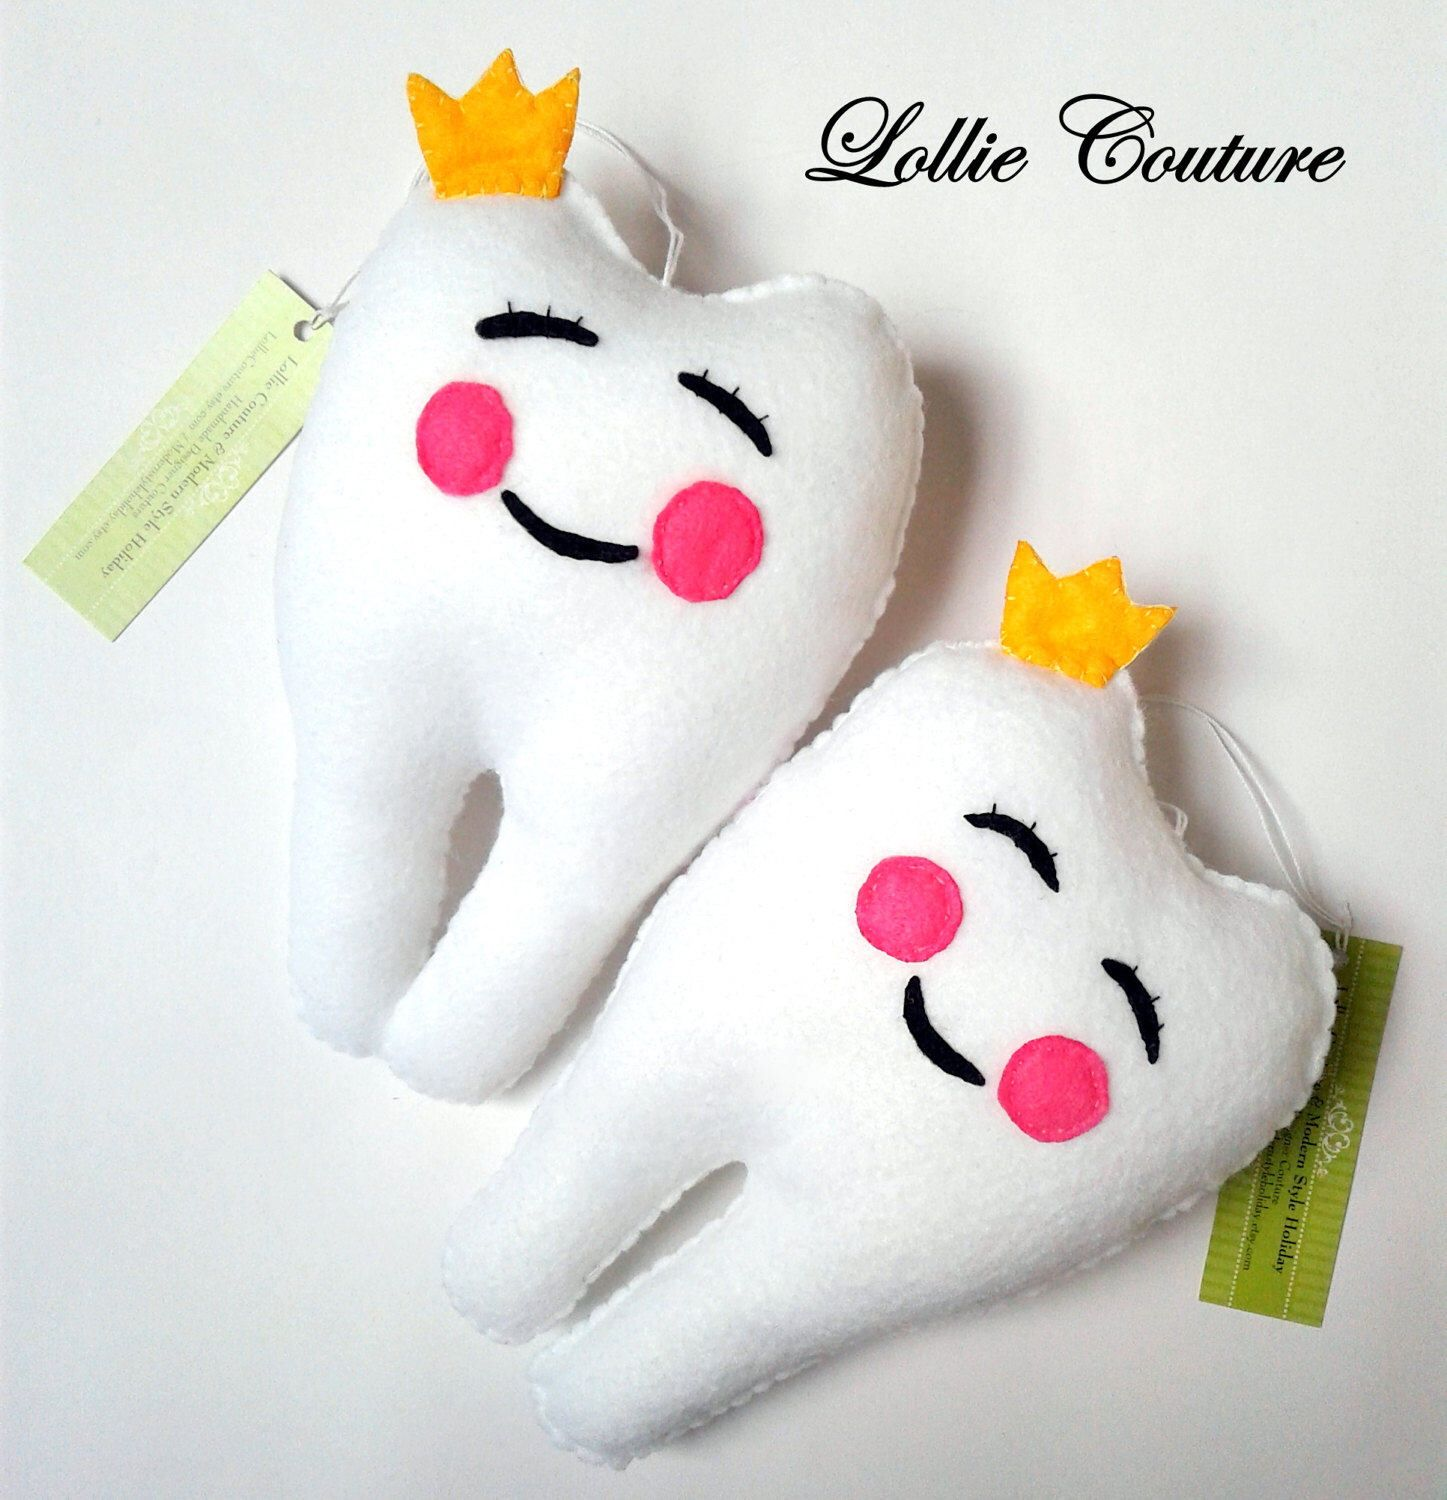 Tooth Fairy pillow, Fairy Tooth pillow, Tooth Fairy, Felt Tooth Pillow, girl tooth pillow, girl tooth fairy, boy tooth pillow, tooth pillow by lolliecouture on Etsy https://www.etsy.com/listing/525314885/tooth-fairy-pillow-fairy-tooth-pillow